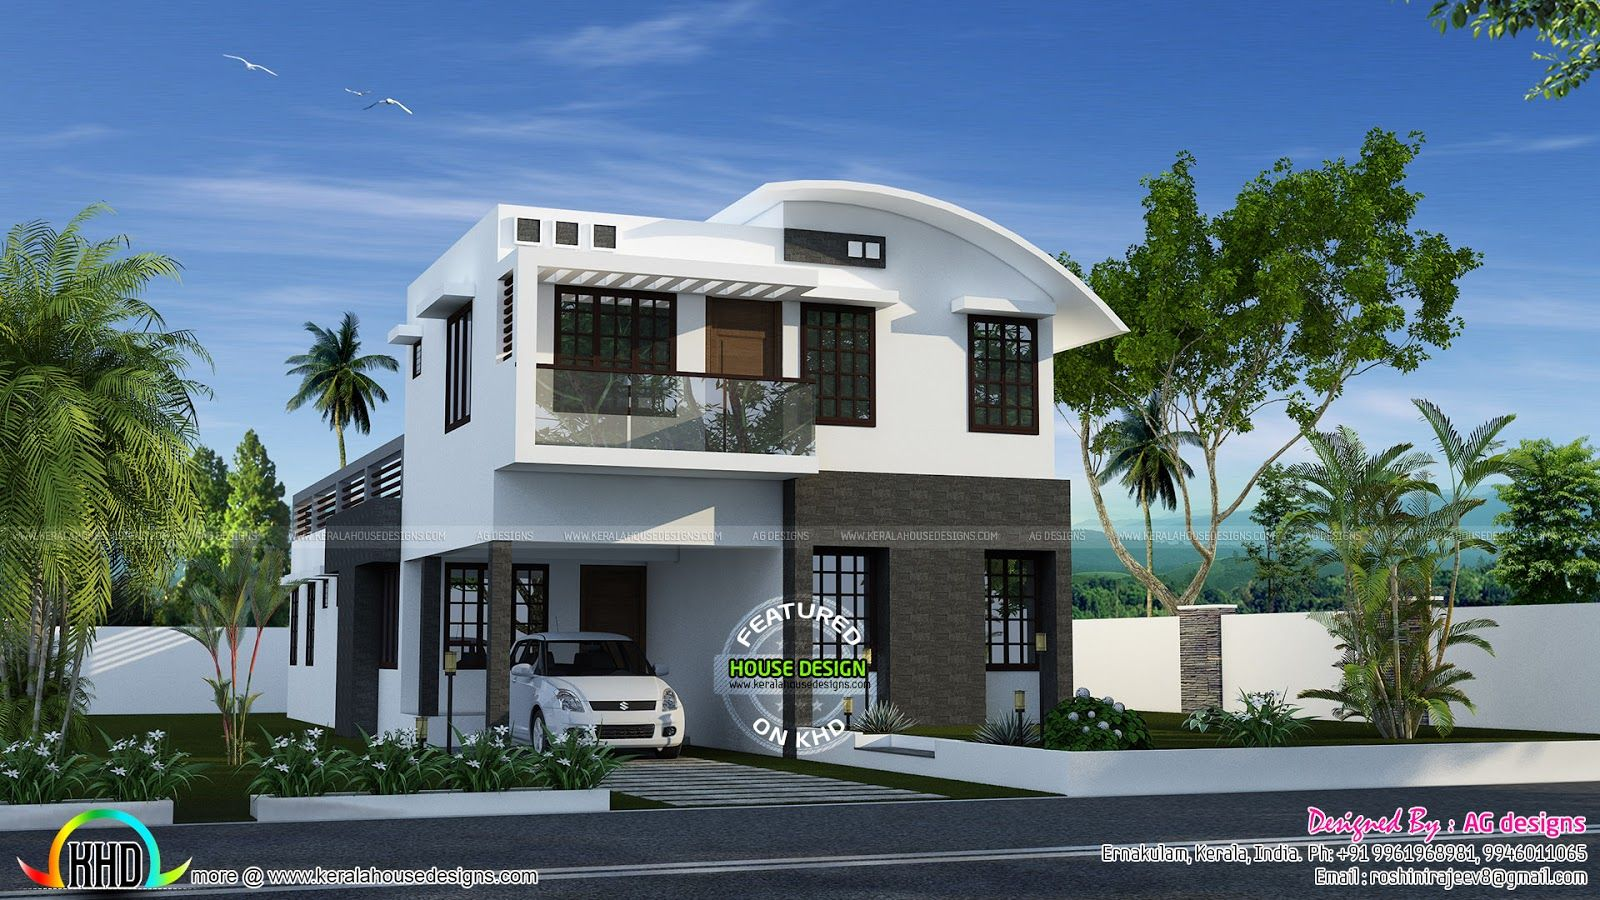 Home design compact slate 30x40 house front elevation for Elevation house plans